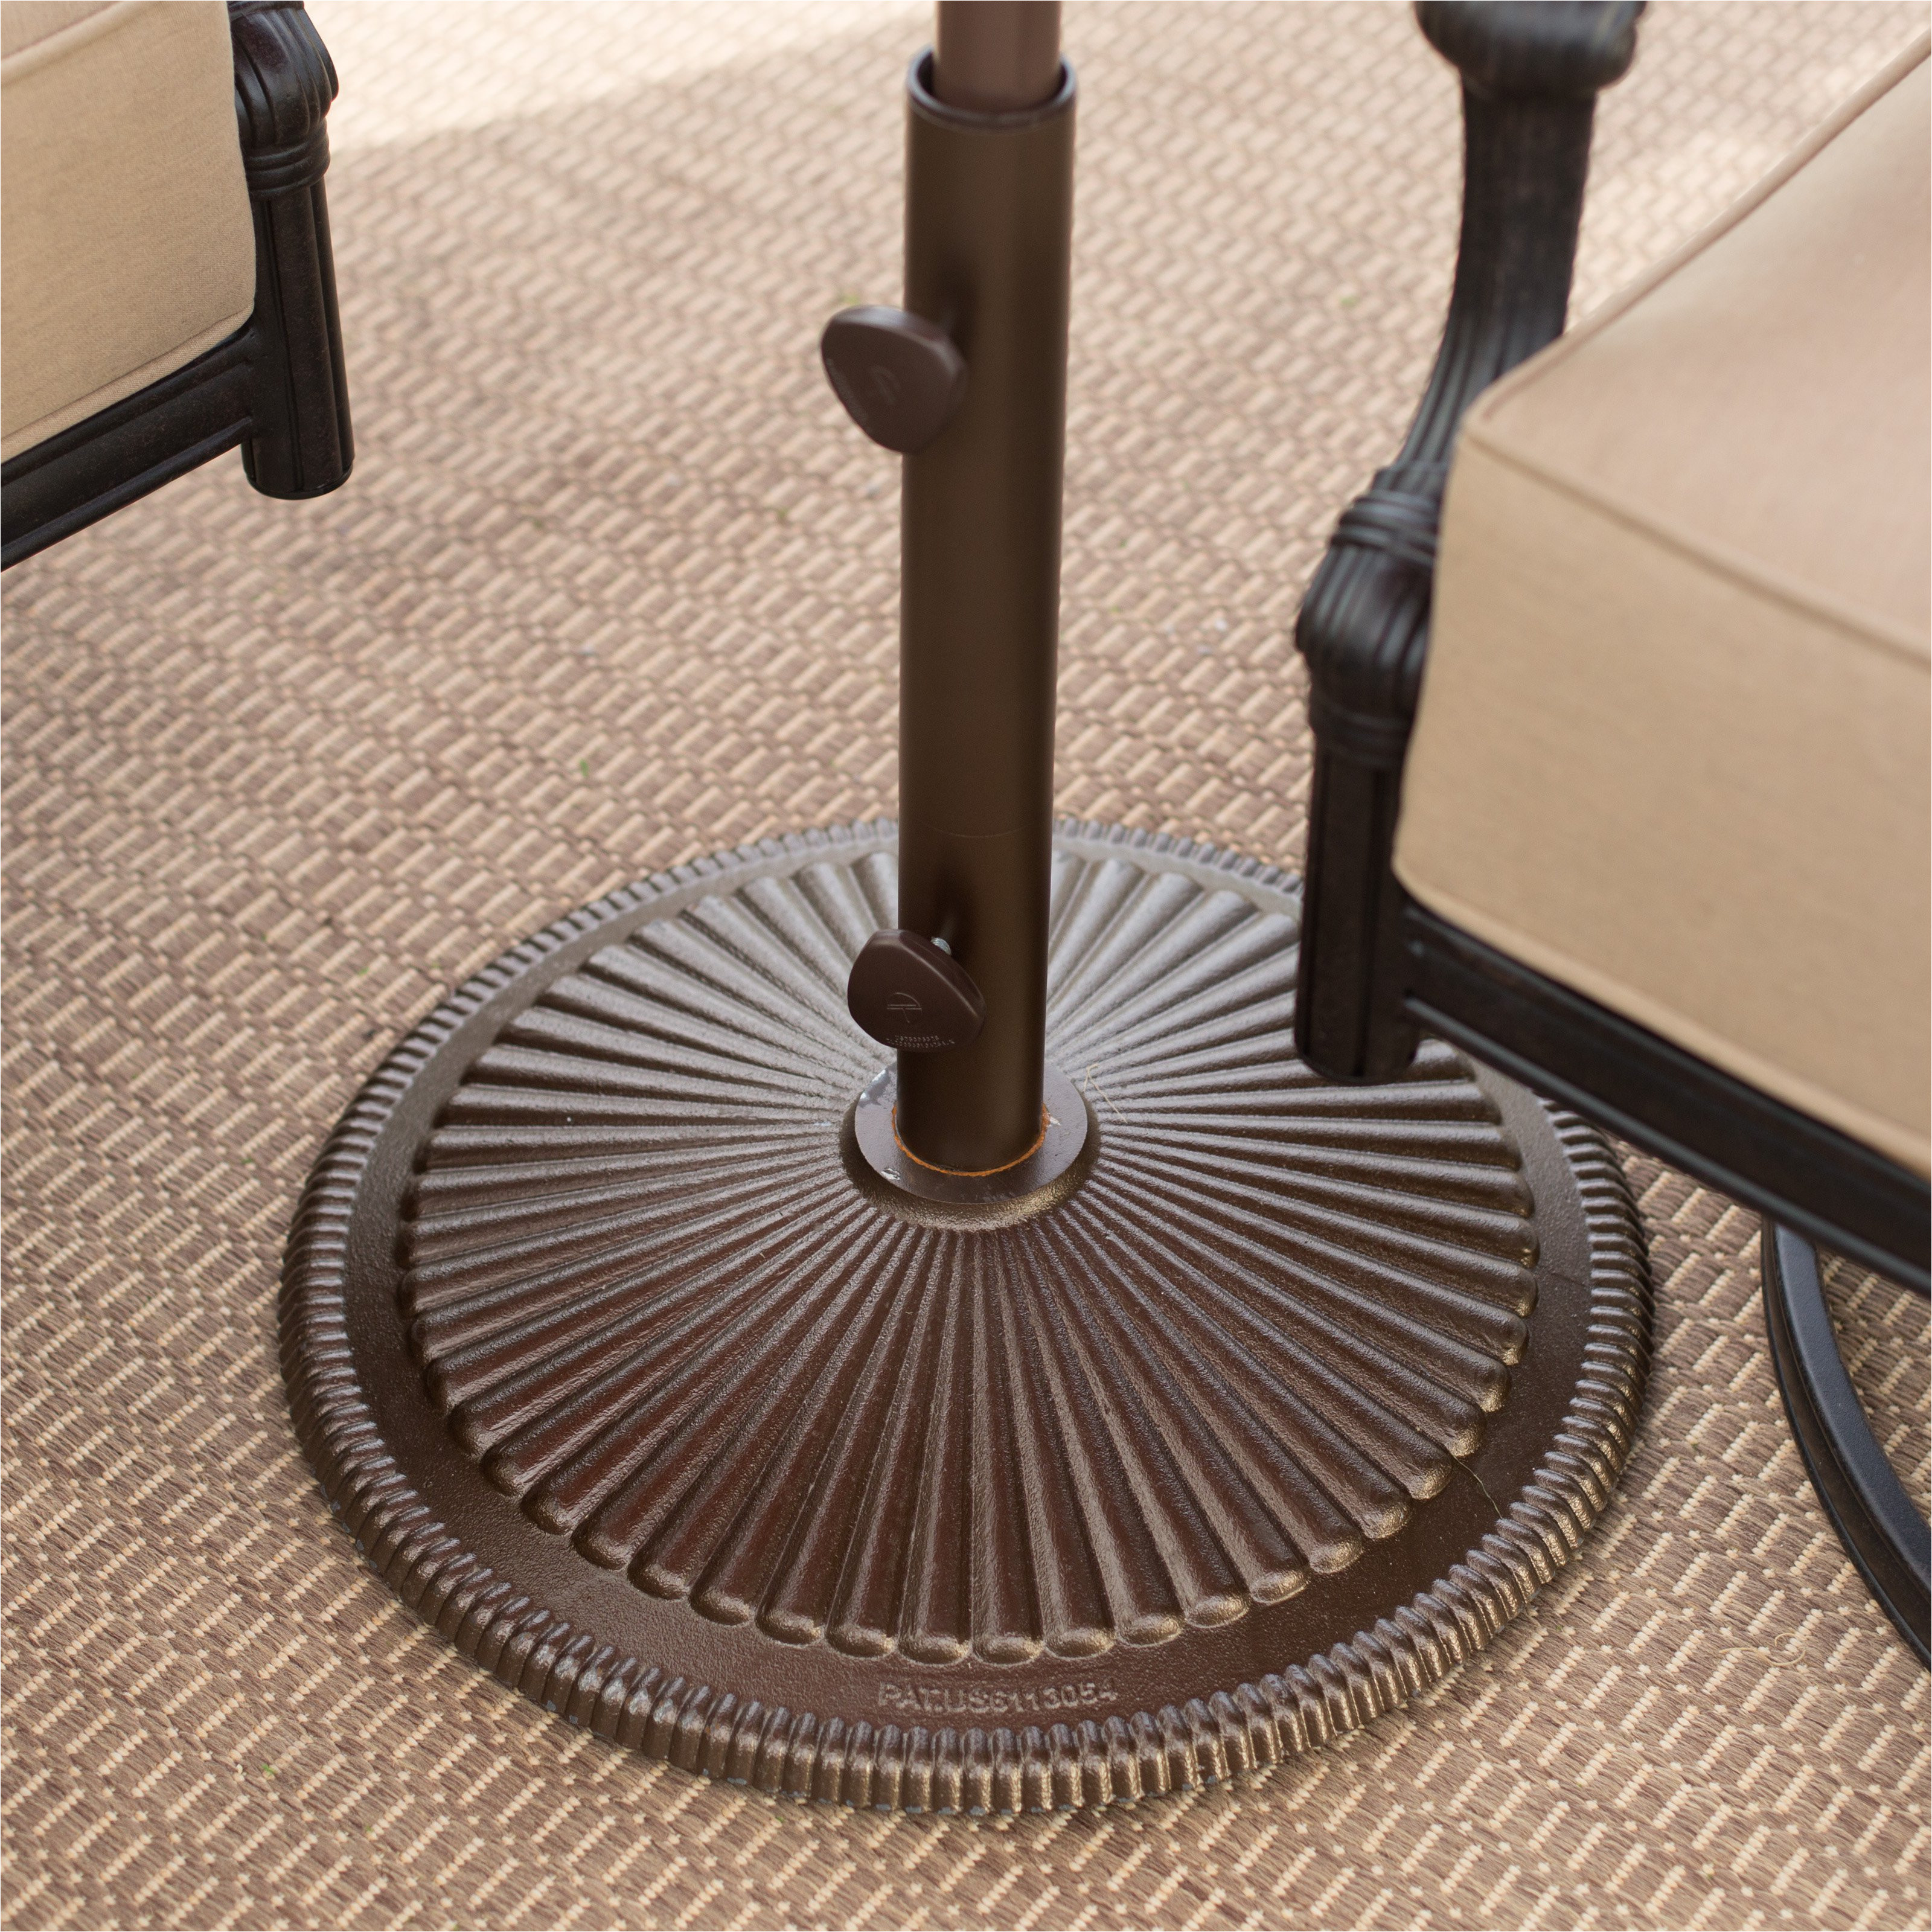 treasure garden 50 lb cast iron classic patio umbrella stand walmart com